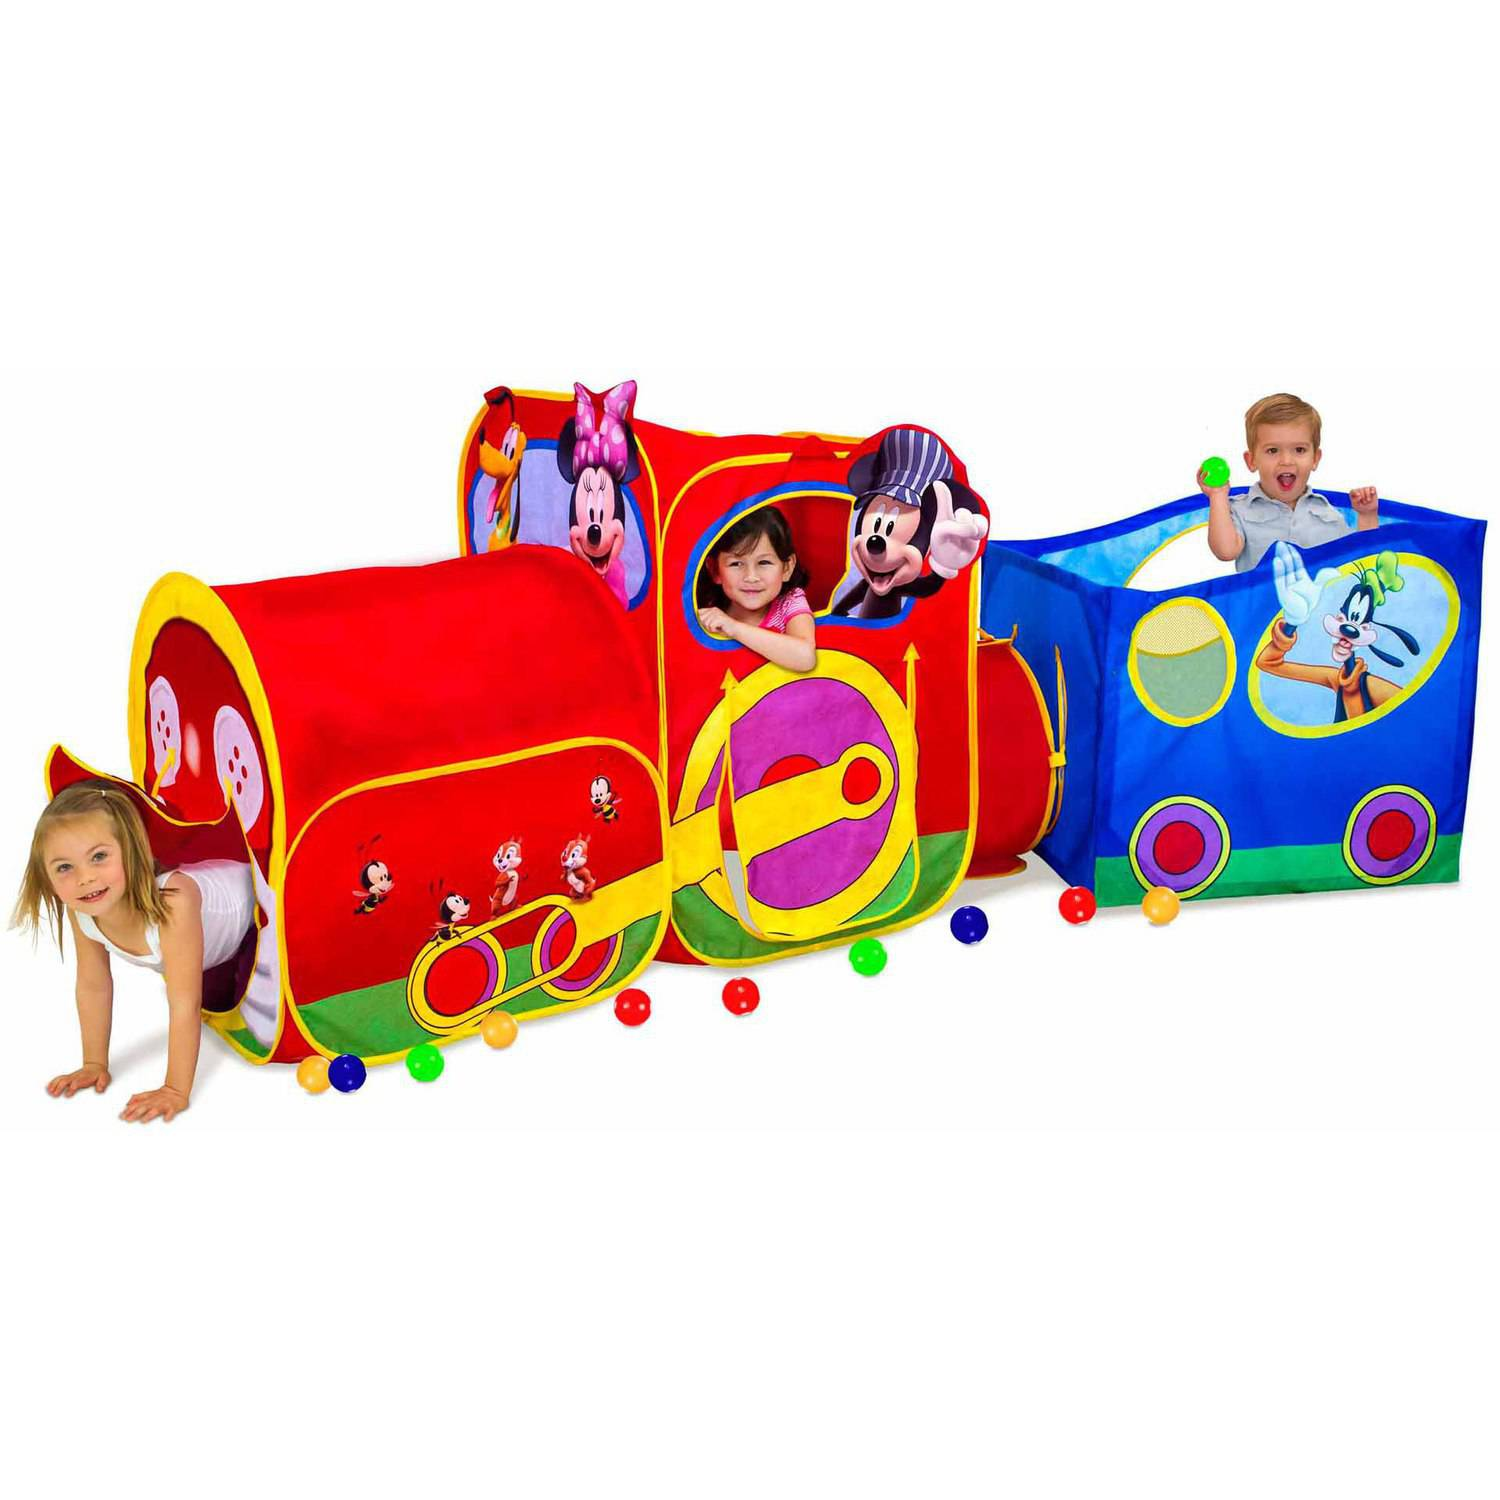 sc 1 st  Walmart & Playhut Disney Mickey Mouse Choo Choo Express Train - Walmart.com